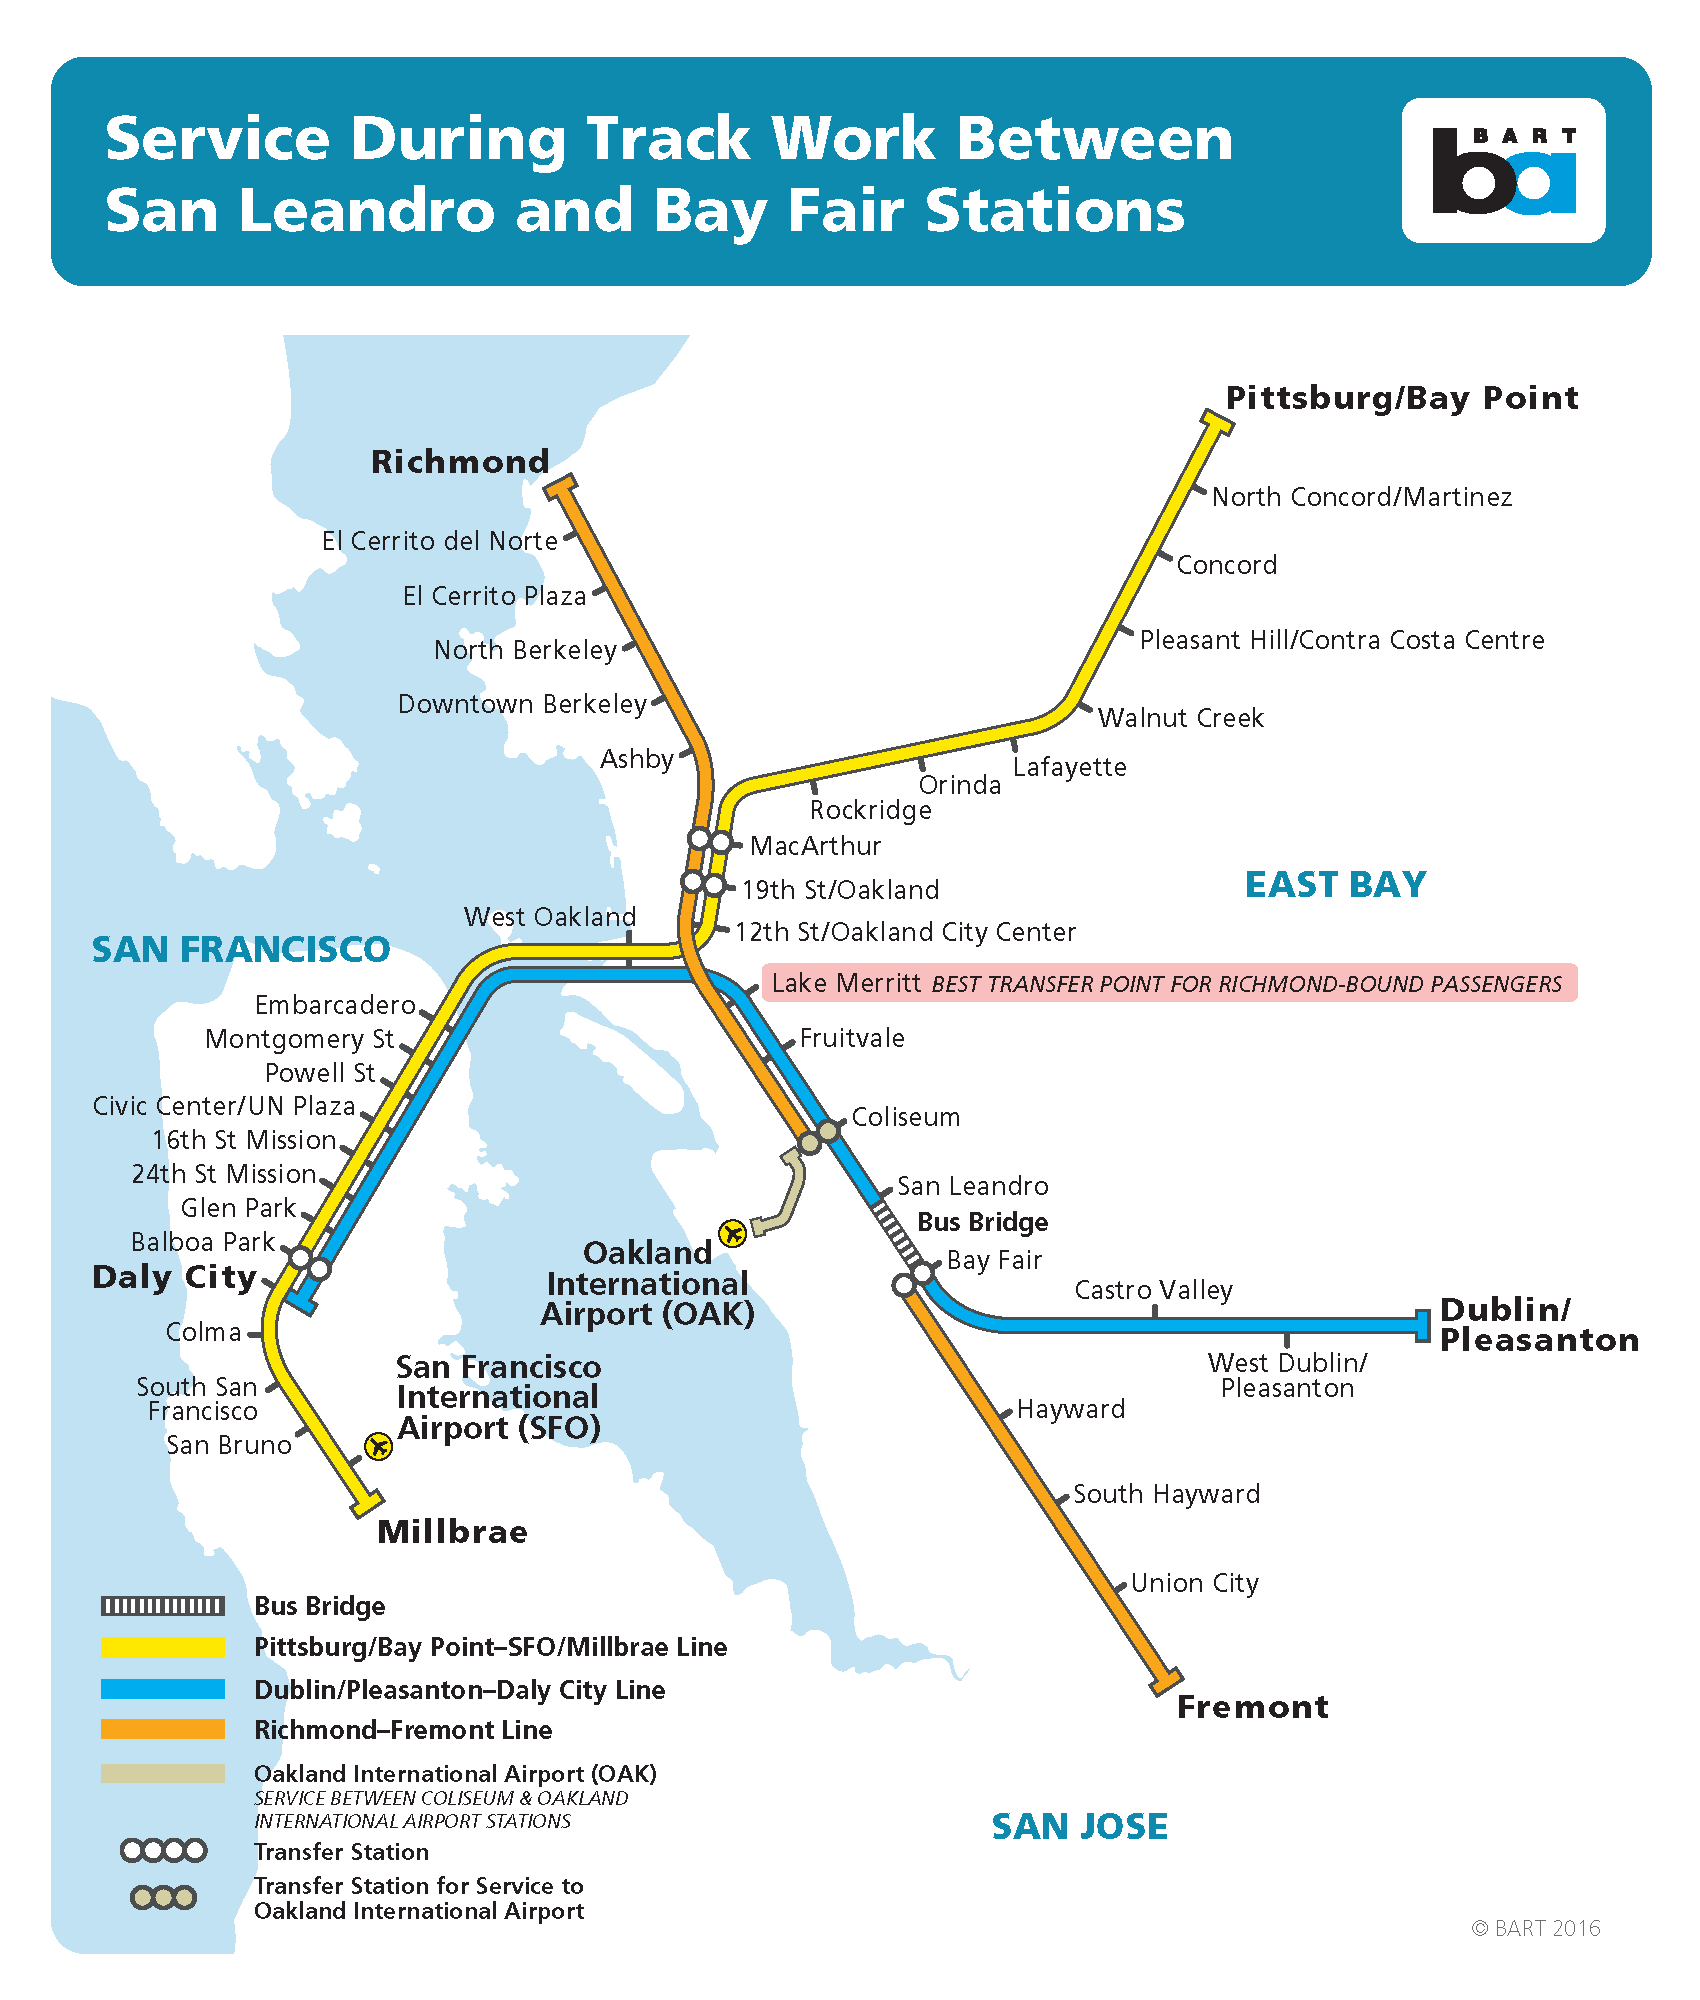 bart will be closing regular train service between the san leandro and bayfair stations to perform necessary track maintenance on several weekendsbetween . san leandro to bay fair bart weekend closure march through june